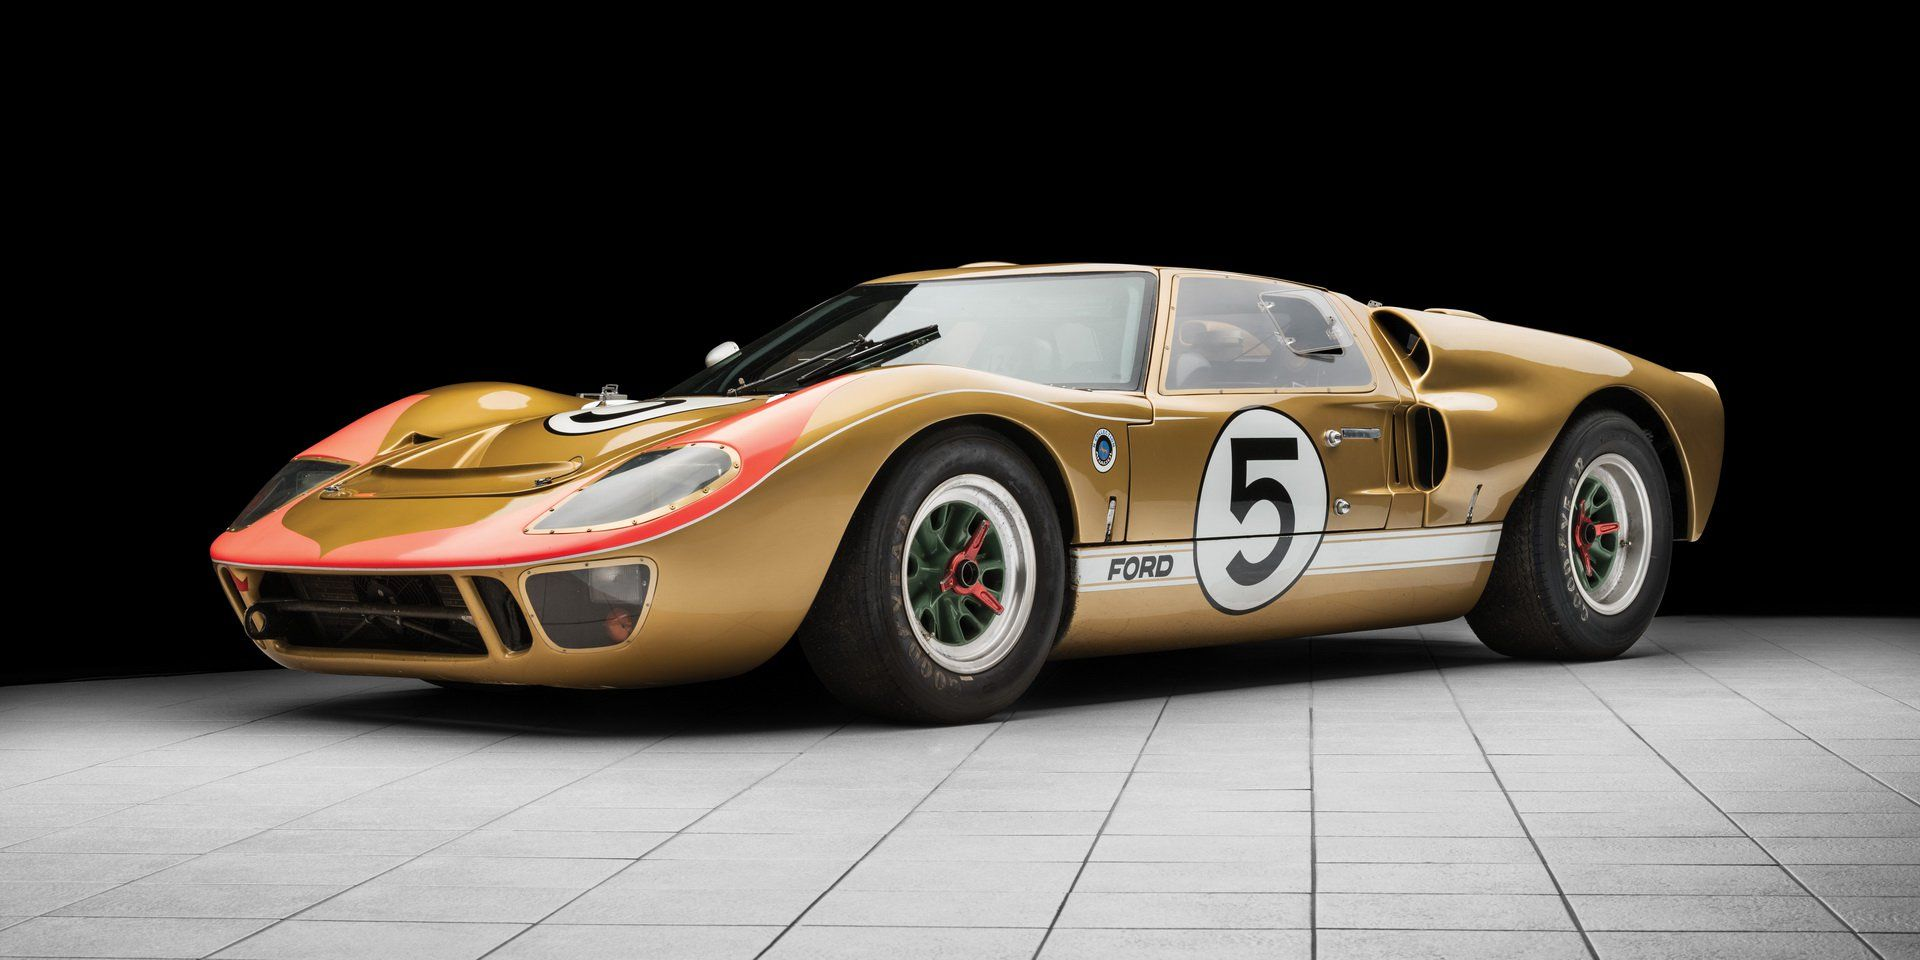 Original Le Mans Conquering 1966 Ford Gt40 Goes Under The Hammer Carscoops Ford Gt40 Gt40 Ford Motorsport